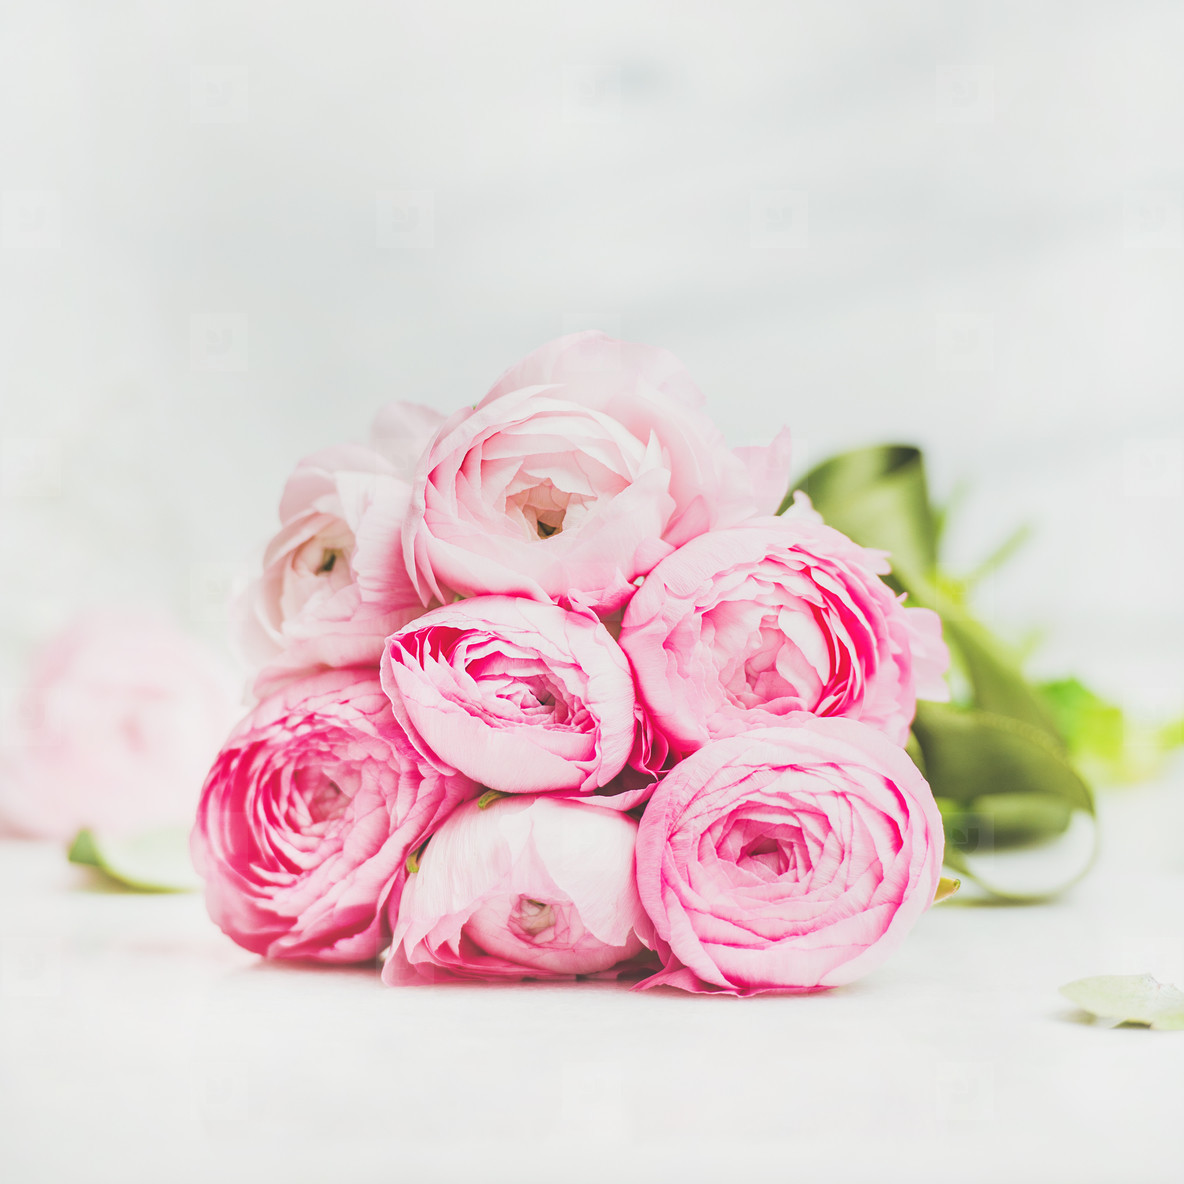 Light pink spring ranunkulus flowers on marble background  square crop